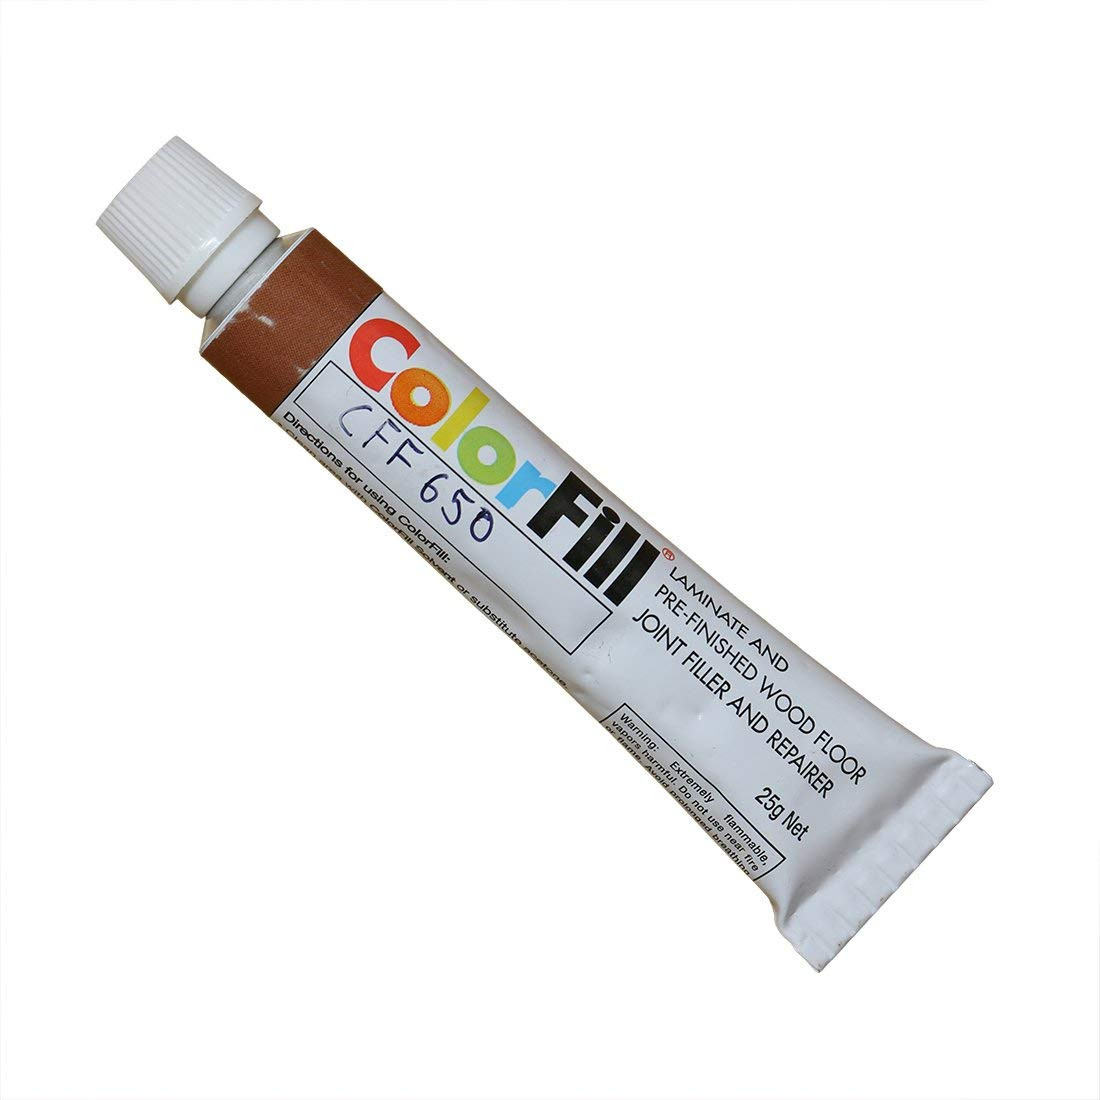 hardwood floor putty filler of cal flor cf41654 color matched repair putty white wall plate with cal flor cf41654 color matched repair putty white wall plate screws amazon com